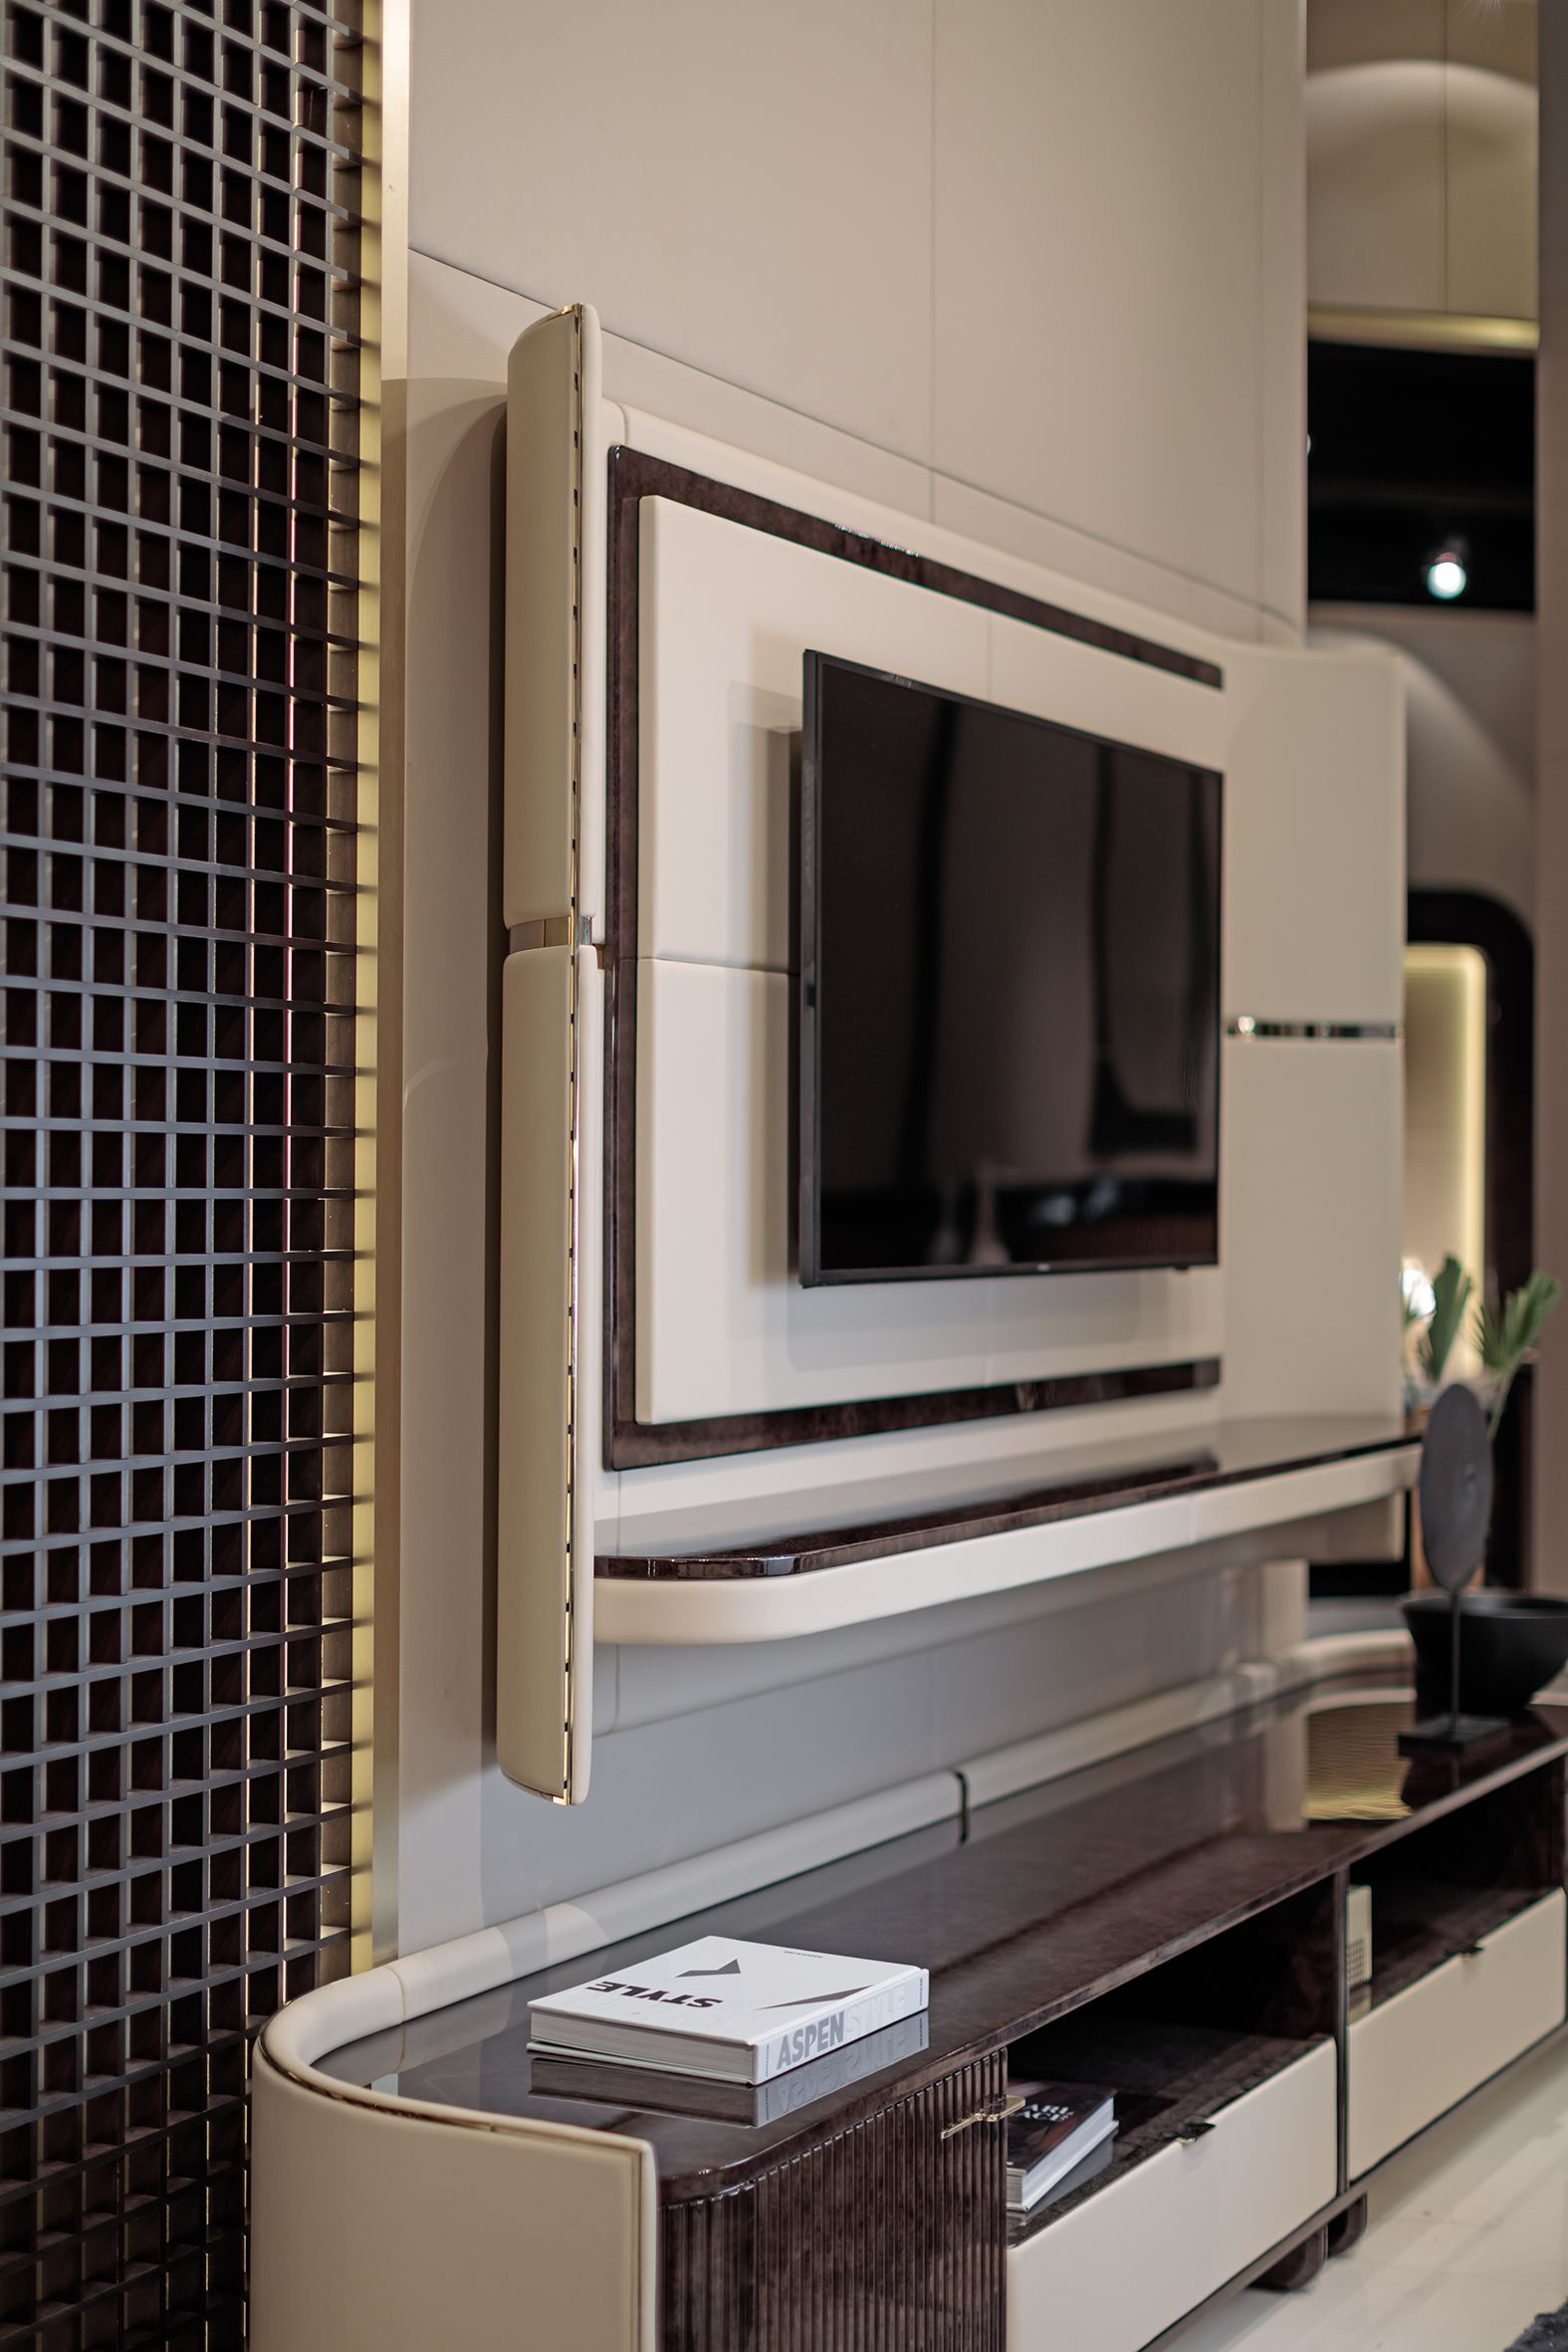 Lcd Panel Design Tv Unit Design Tv: Italian Furniture For Exclusive And Modern Design